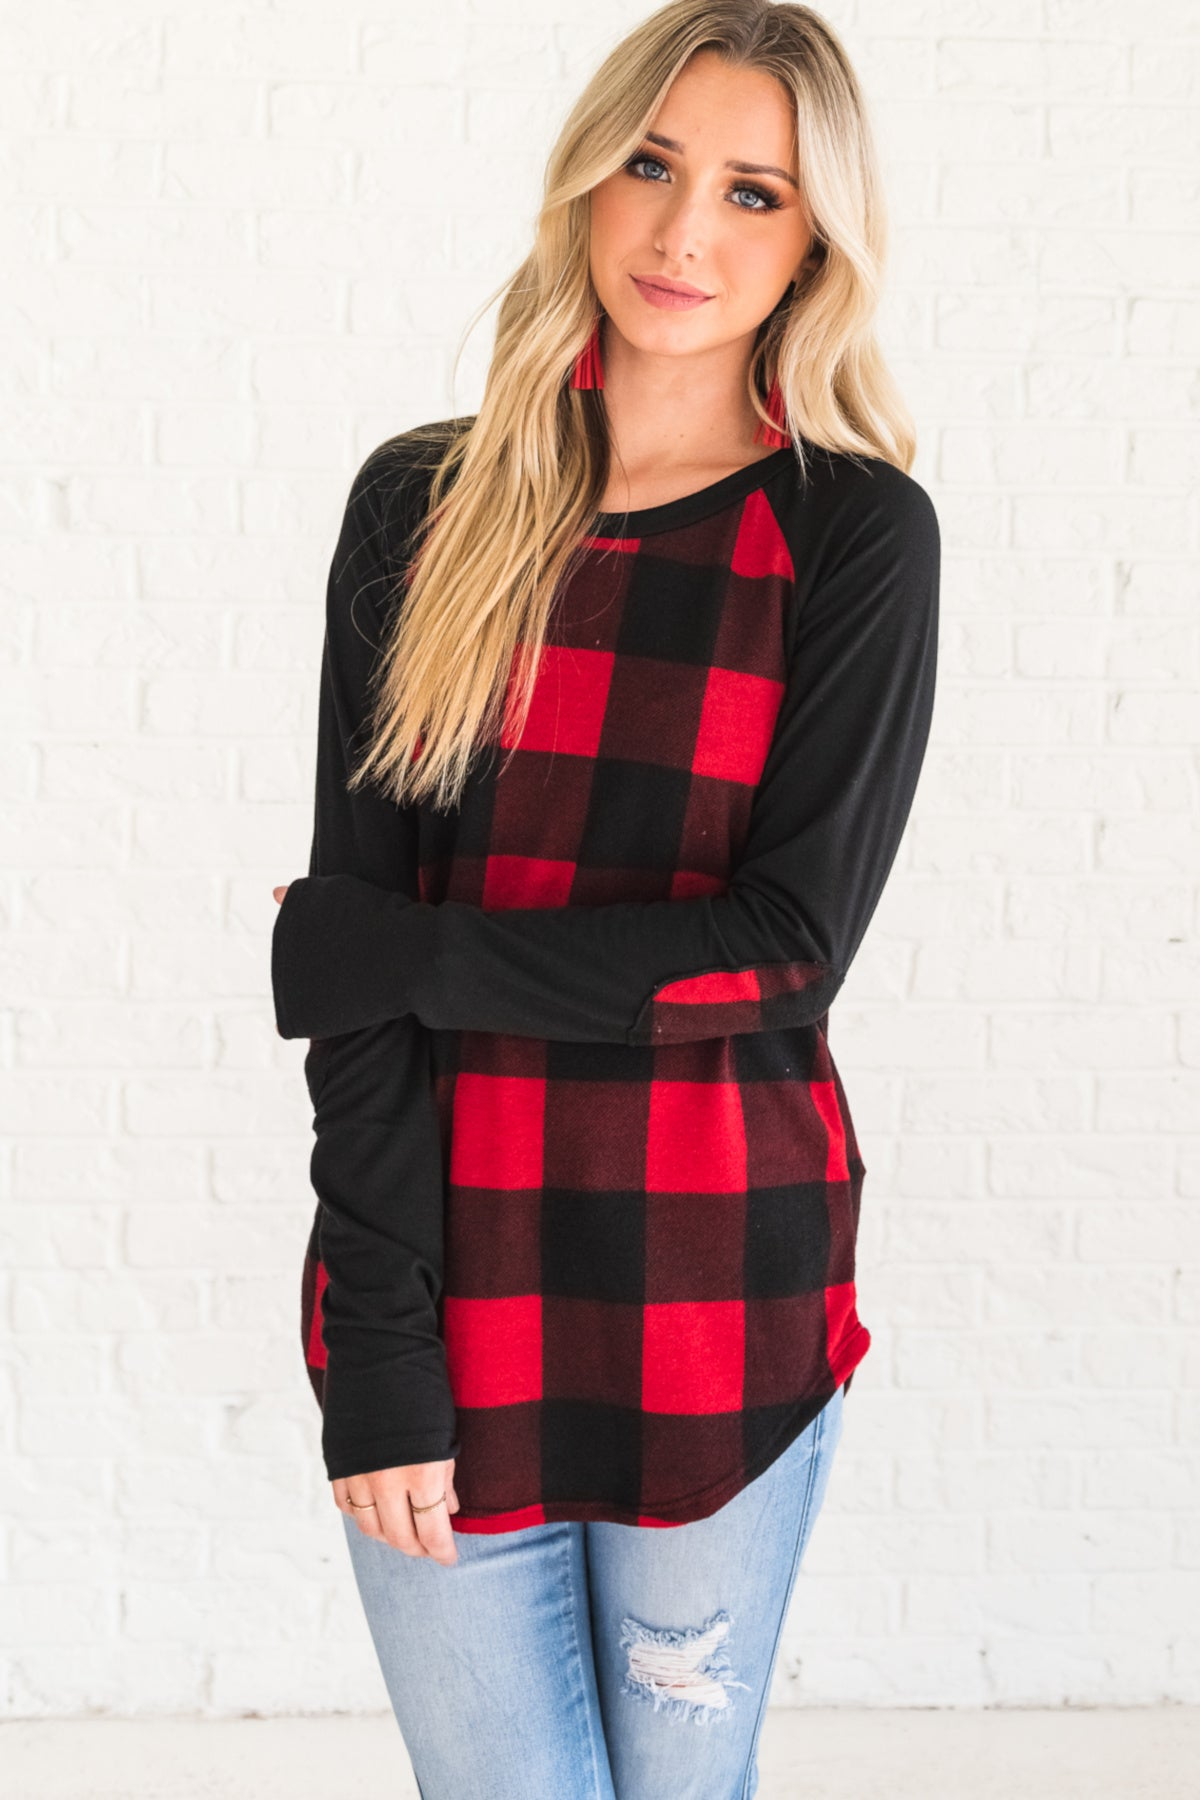 Red Black Buffalo Plaid Cute Long Sleeve Top with Elbow Patch Accents